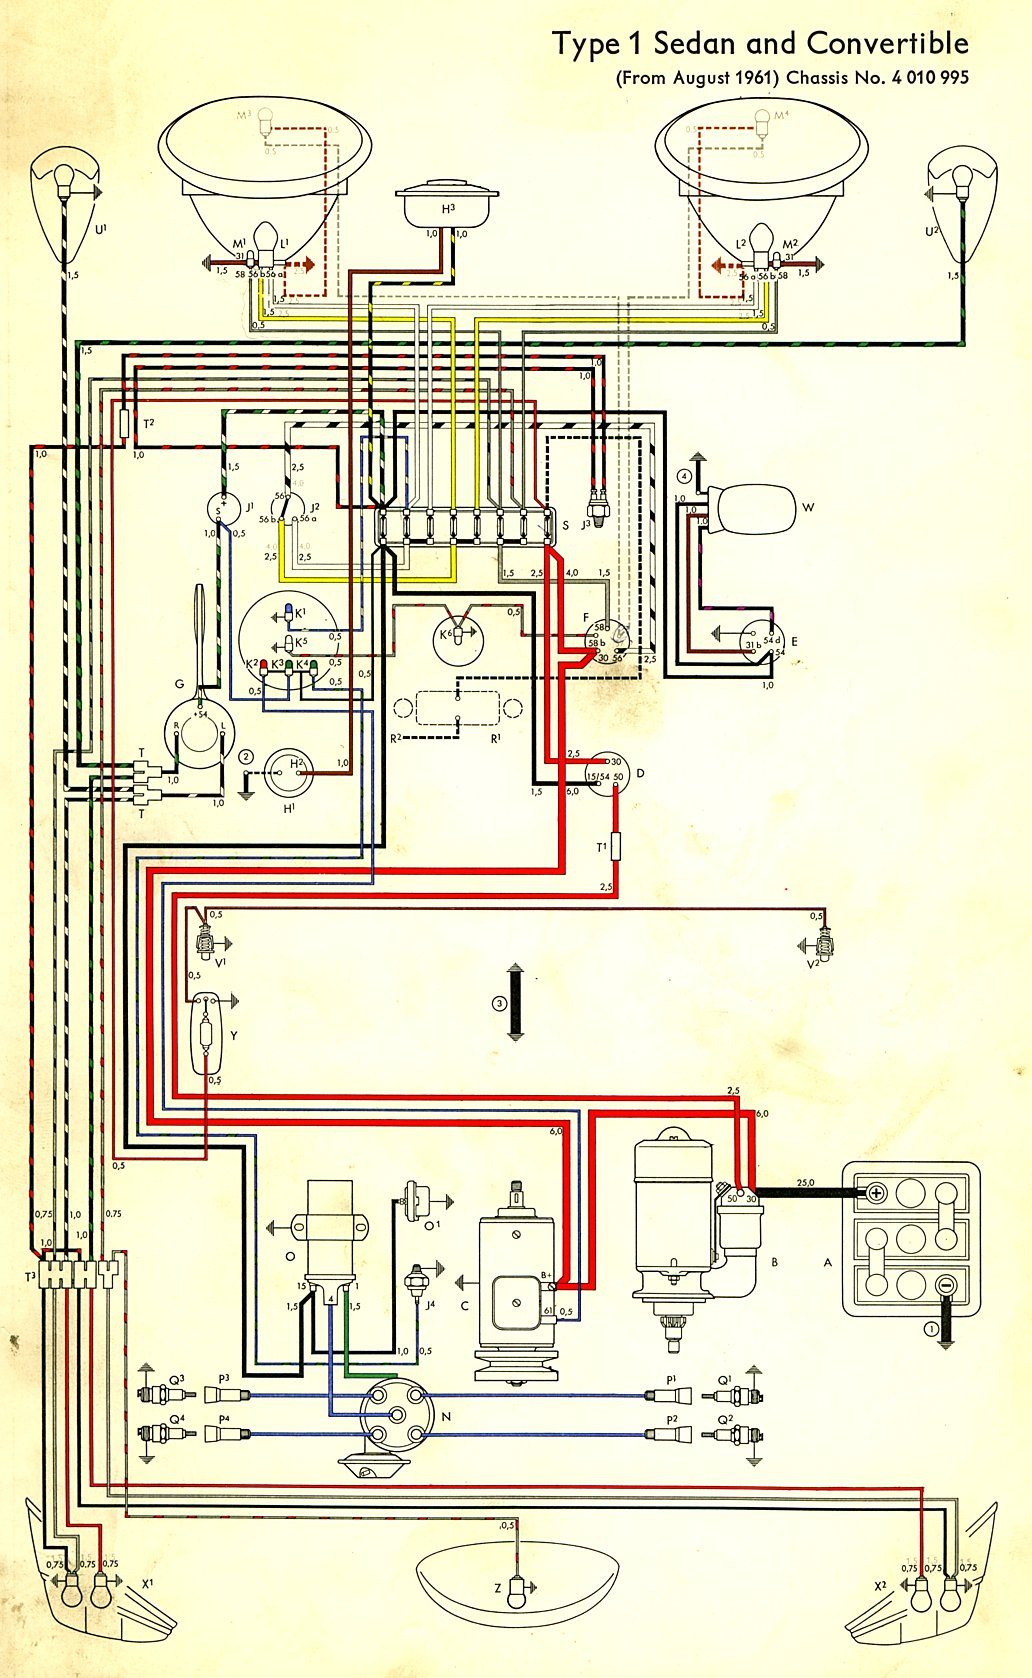 vw wiring diagram alternator craftsman garage door 1962 beetle | thegoldenbug.com